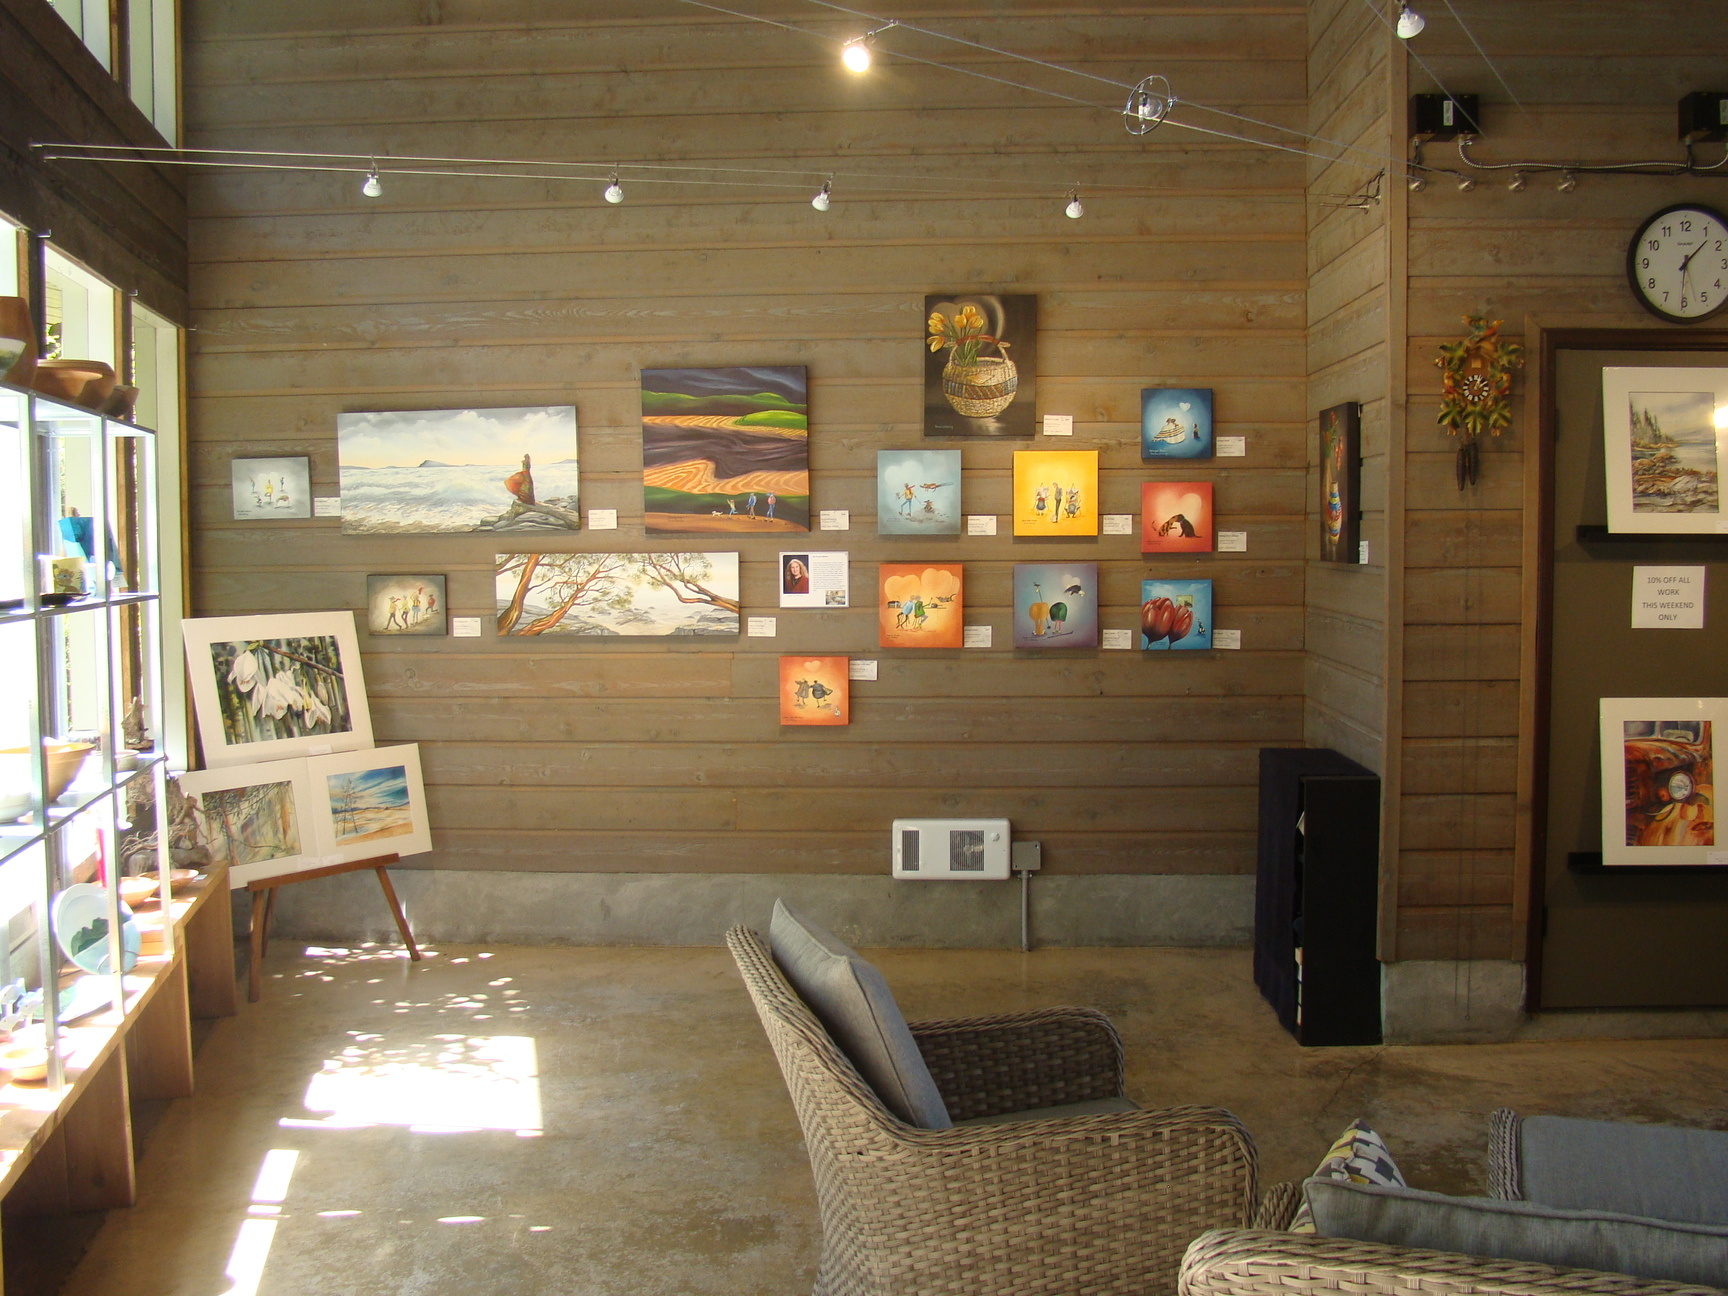 Raintree Studio and Gallery